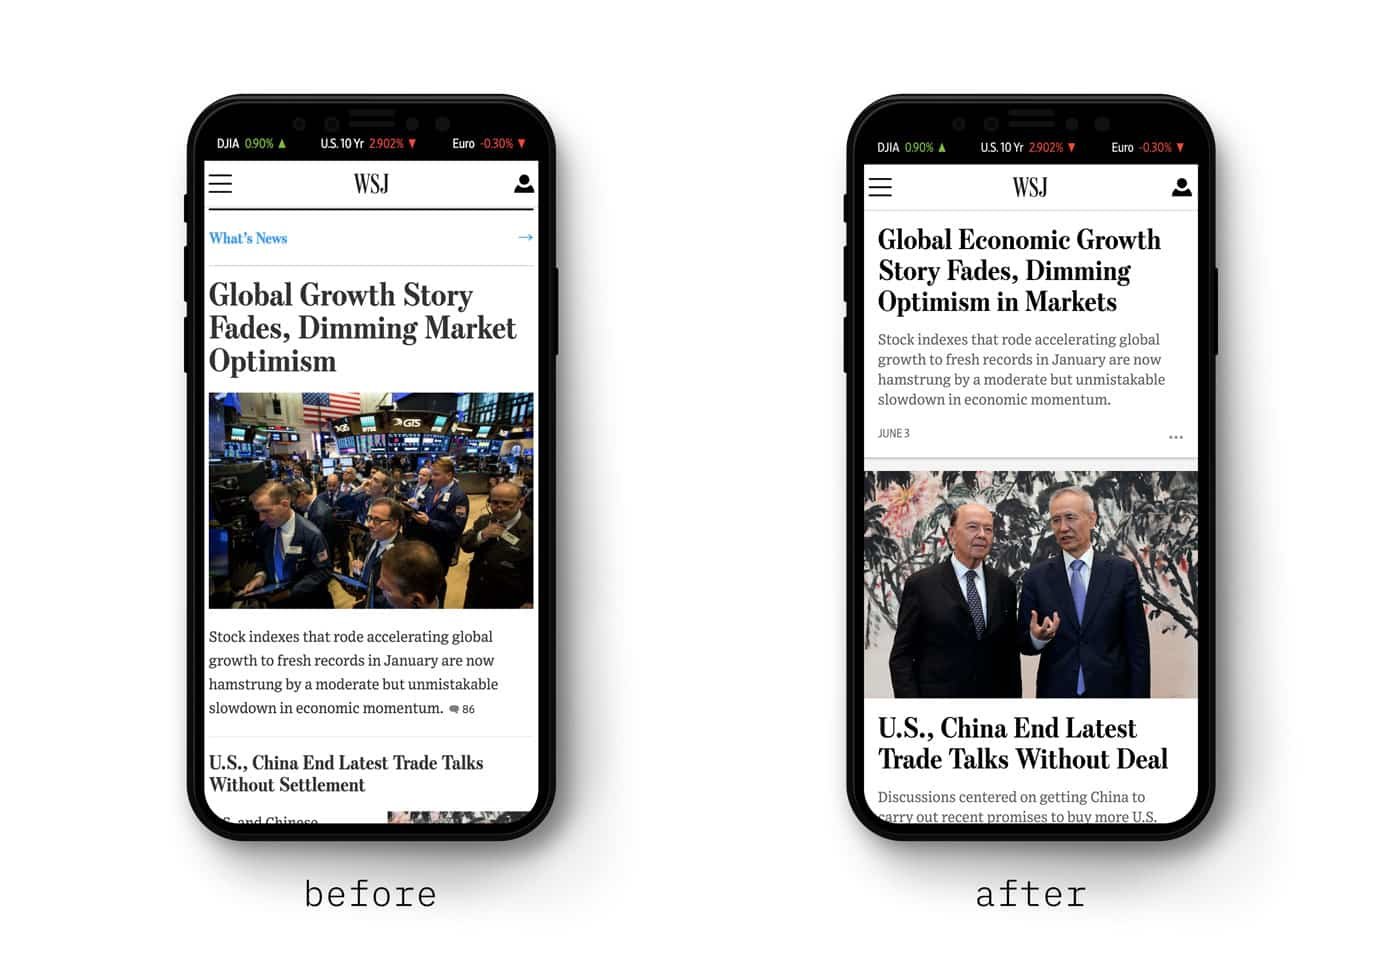 The WSJ.com mobile homepage before and after the re-design